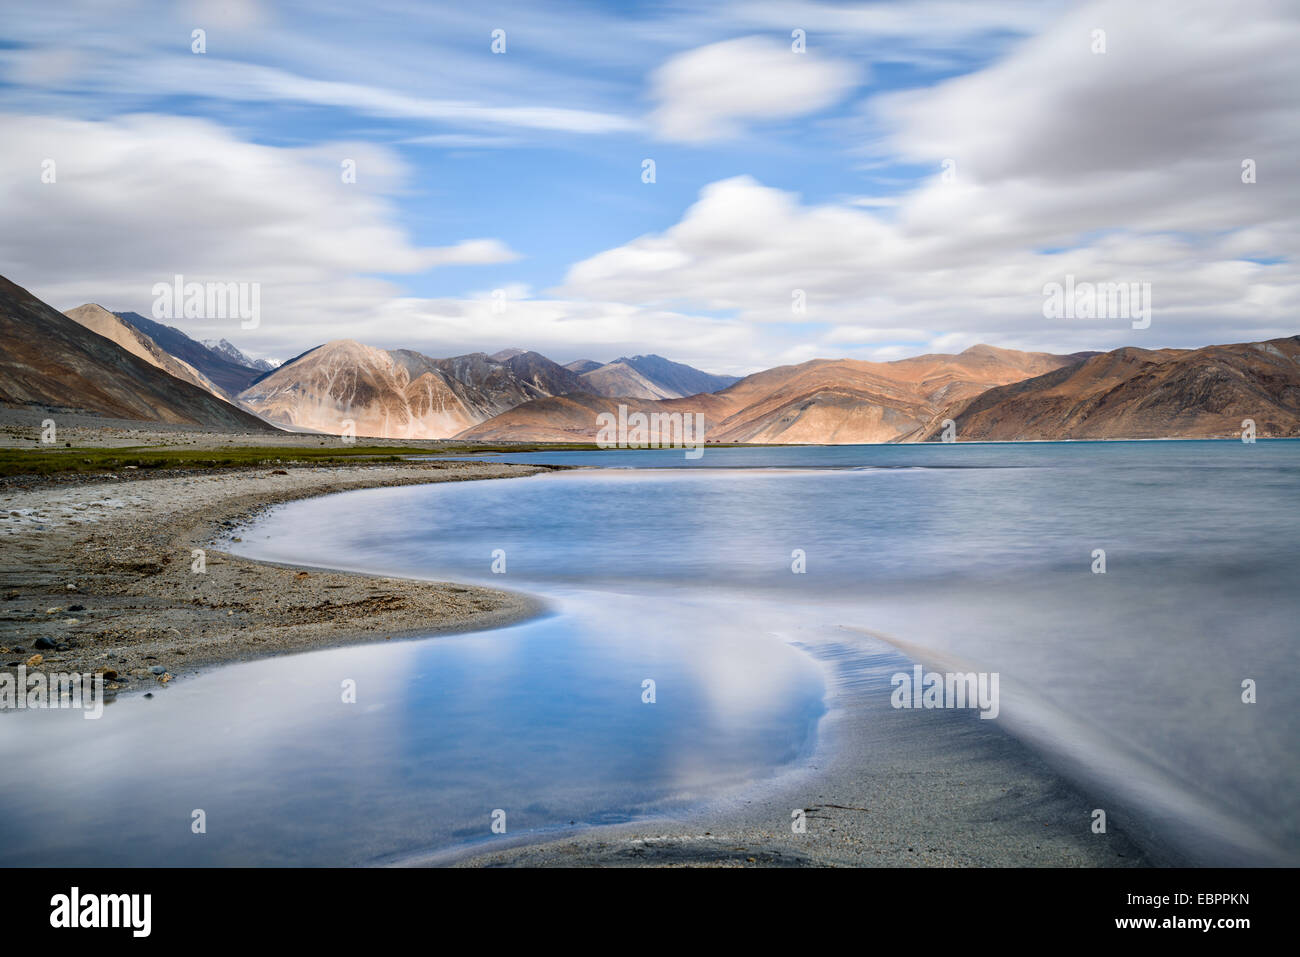 The turquoise, saline water of Tso Pangong, backed by mountains, Ladakh, India, Asia - Stock Image